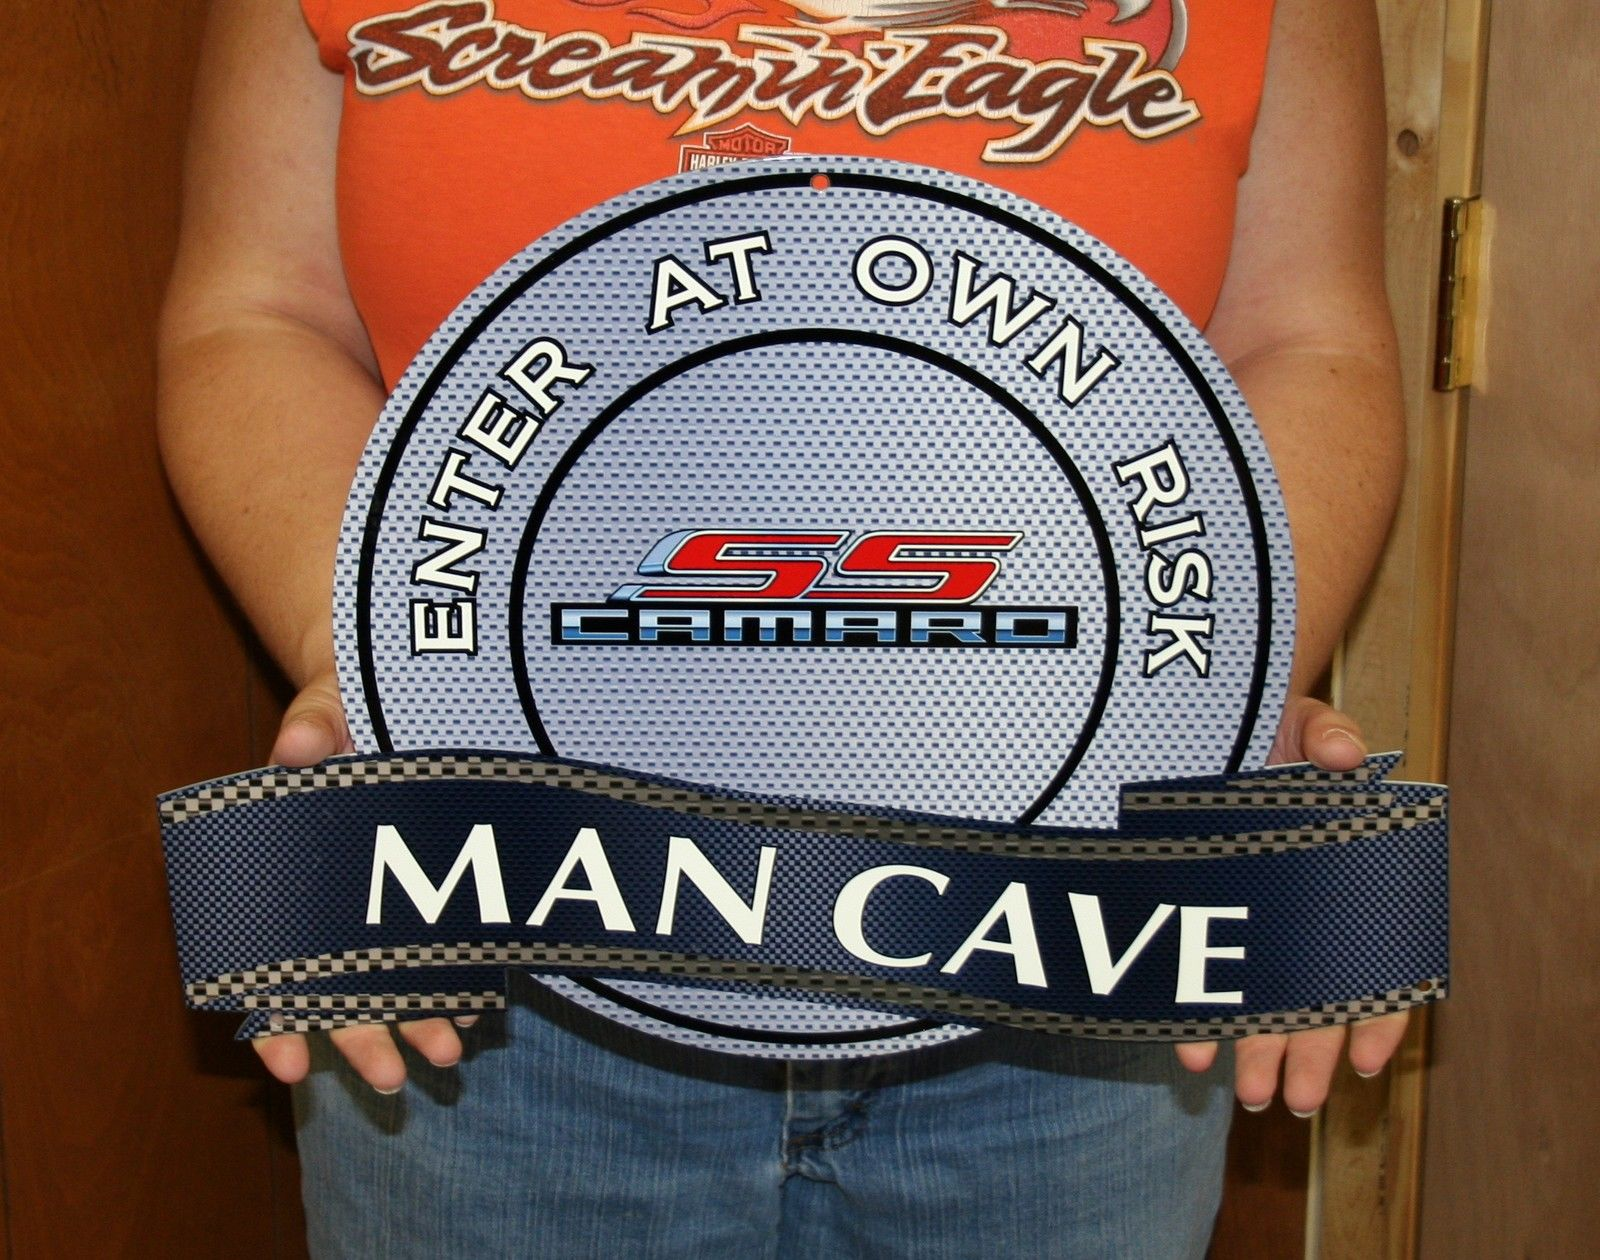 Man Cave Gifts Wholesale : Chevy gm camaro vette mancave and private parking signs